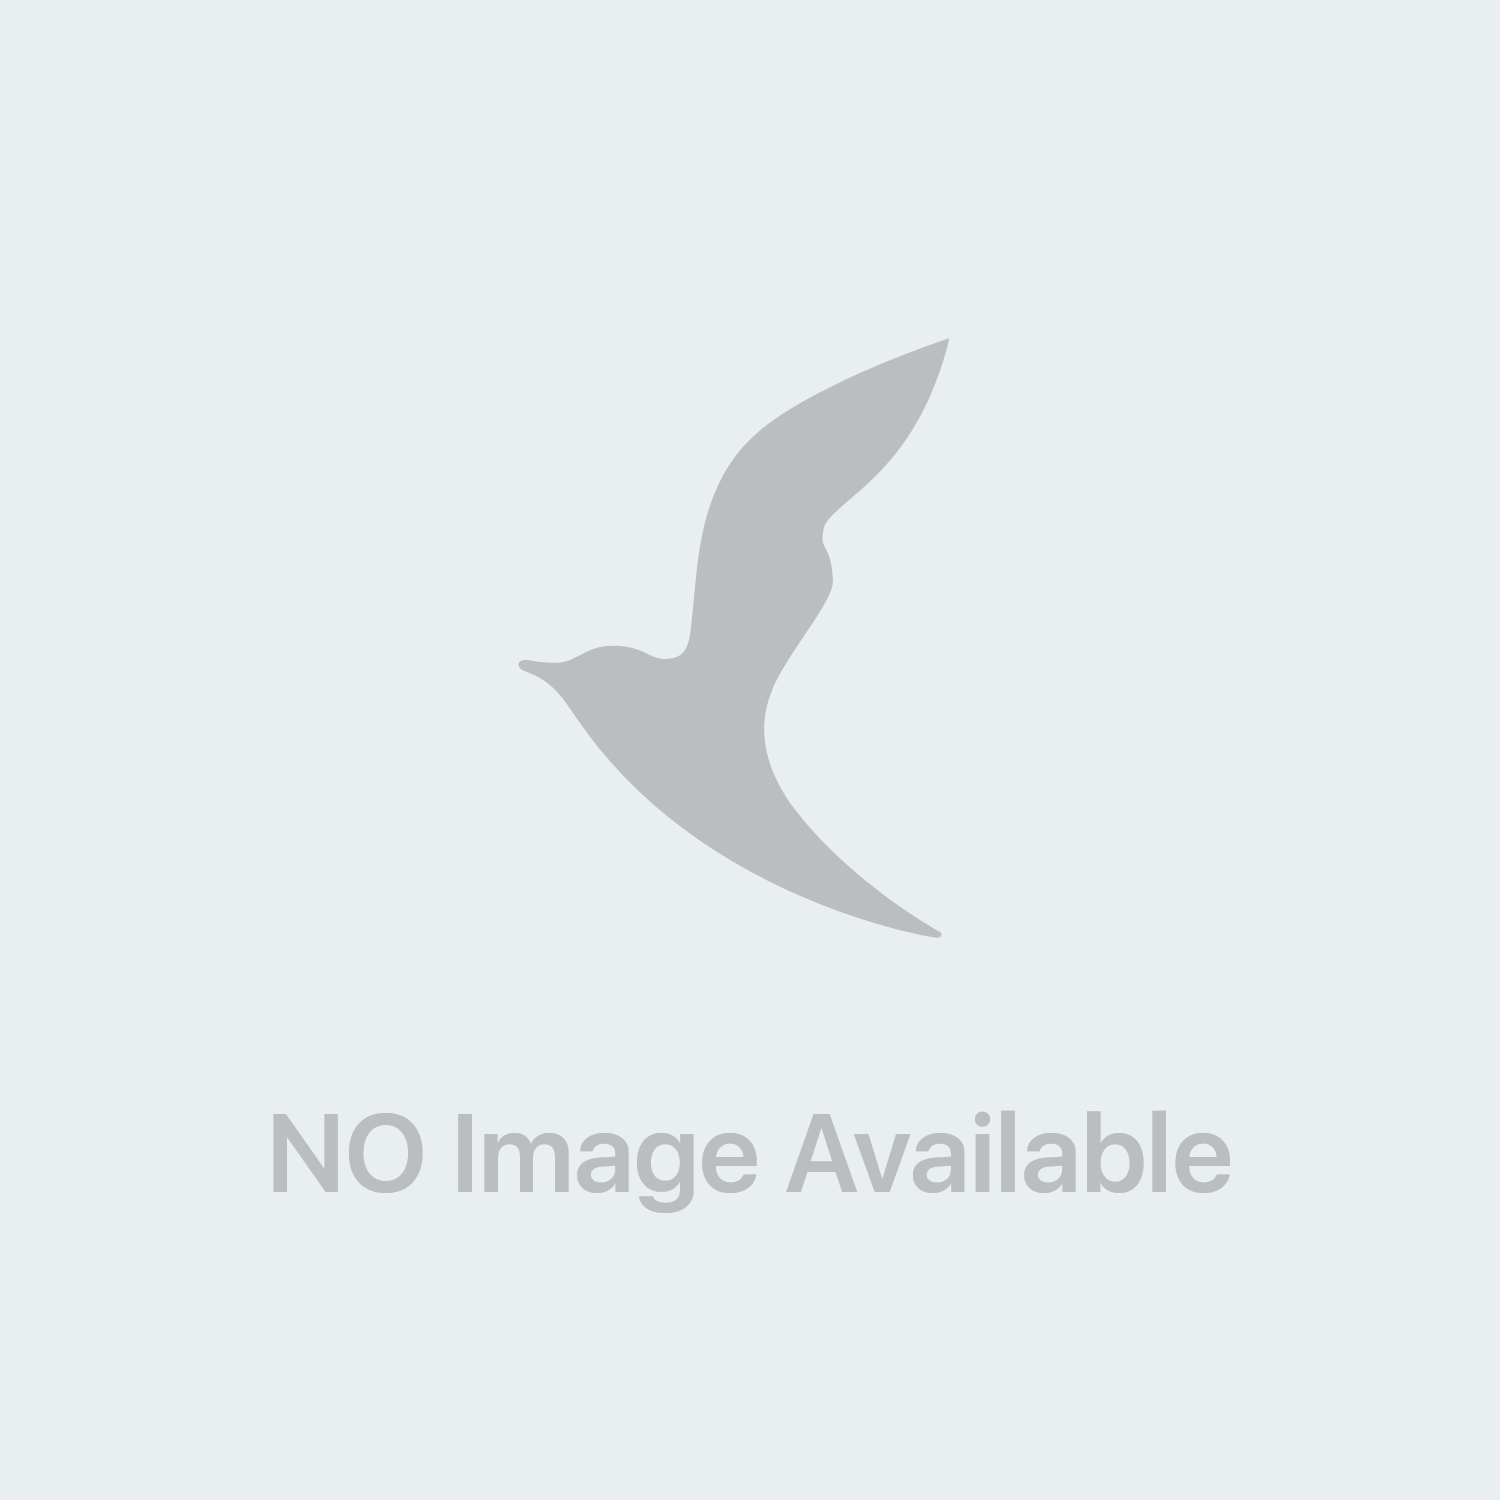 Uriage Mousse Detergente Viso 150 Ml